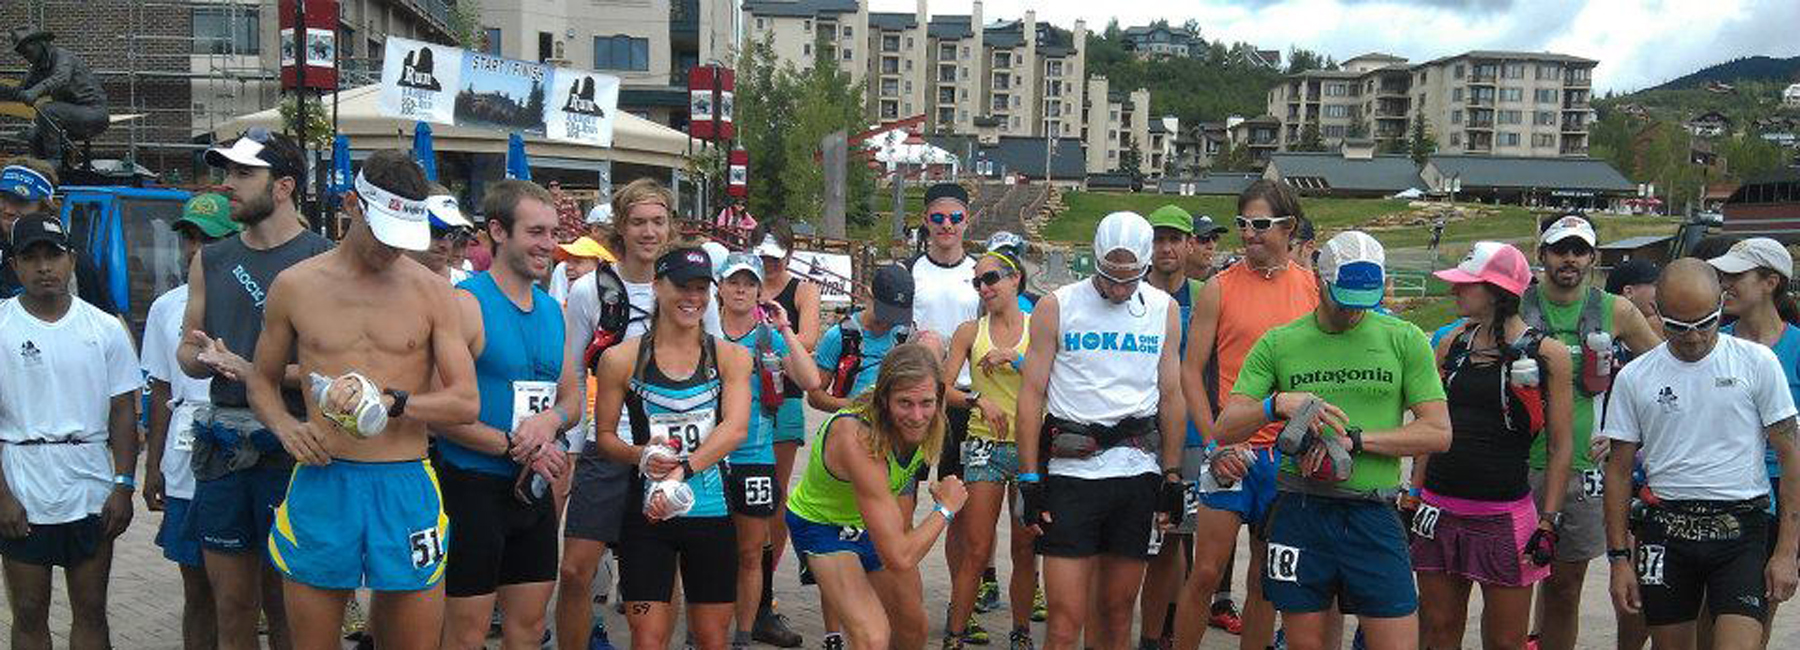 It did that by putting together a prize purse of $50,000 for the 100-mile run.